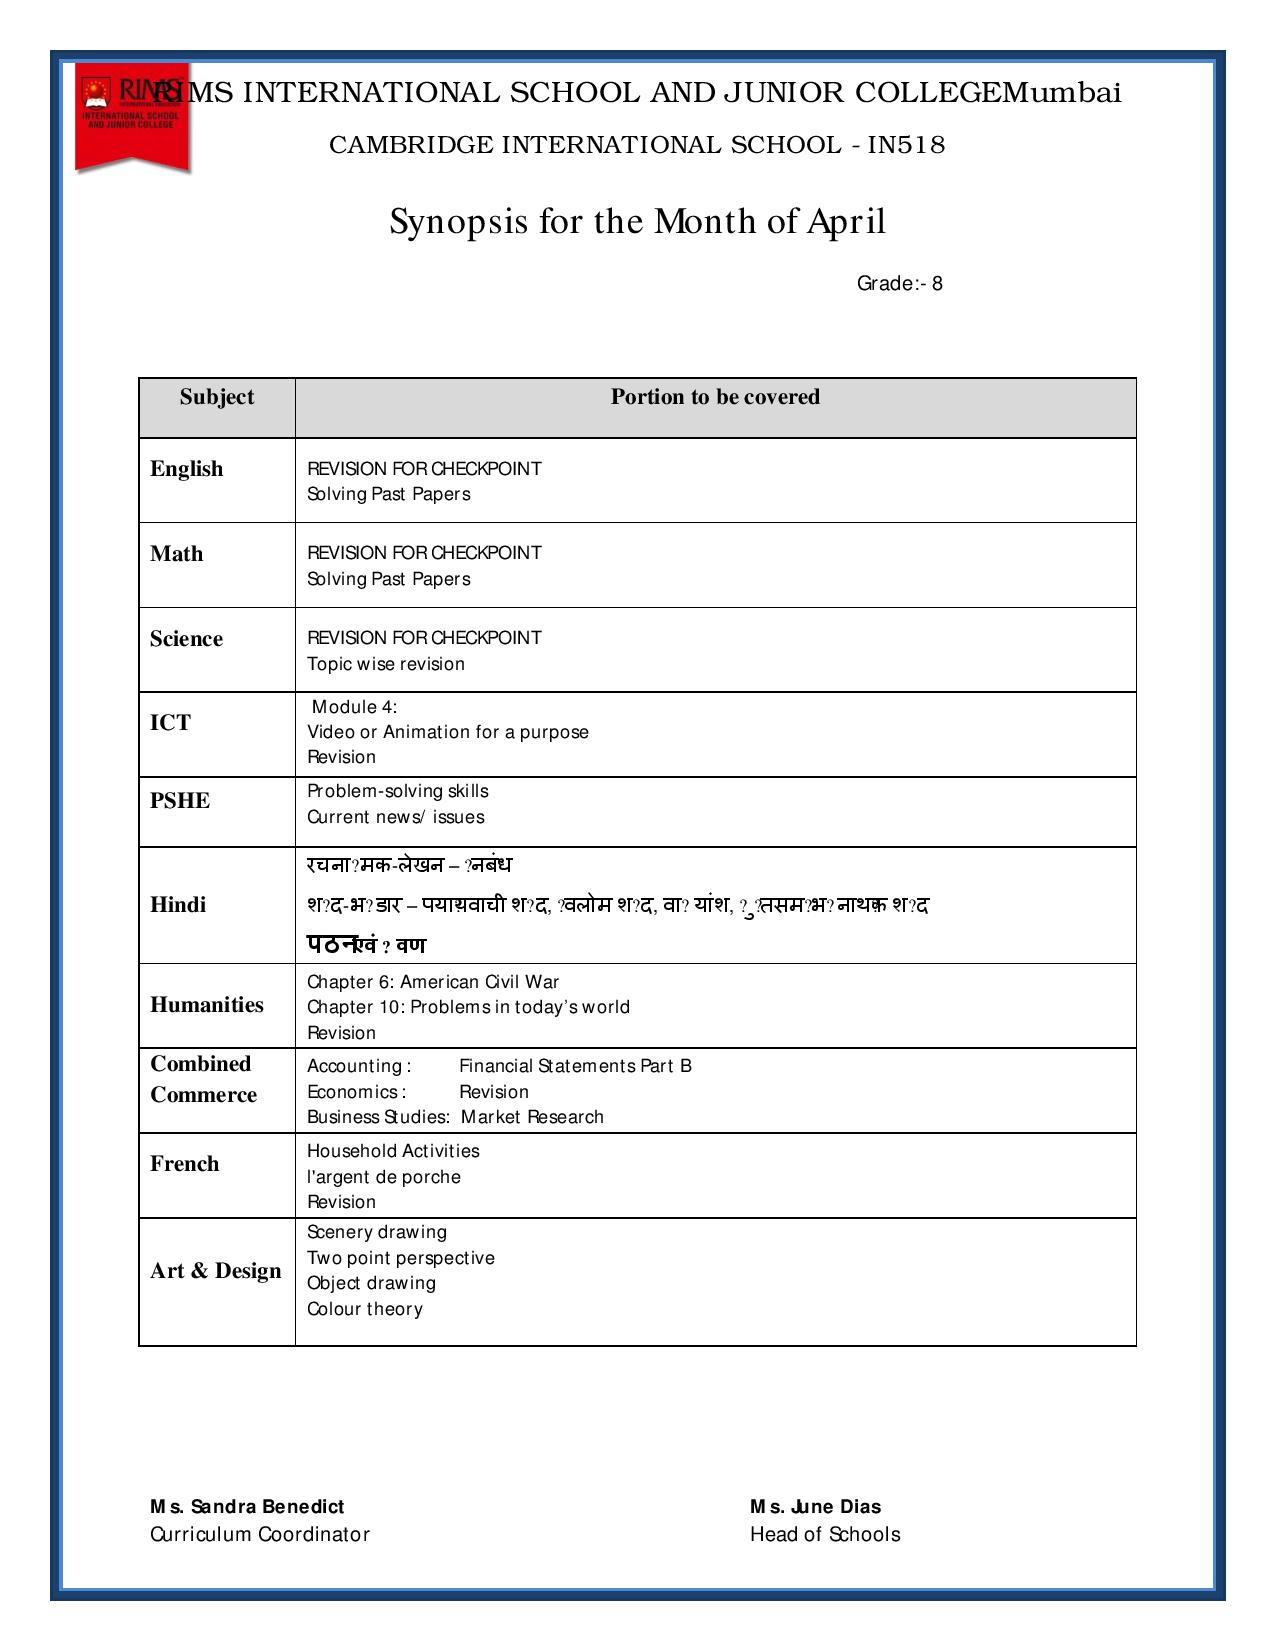 Synopsis for the Month of April – Grade 8